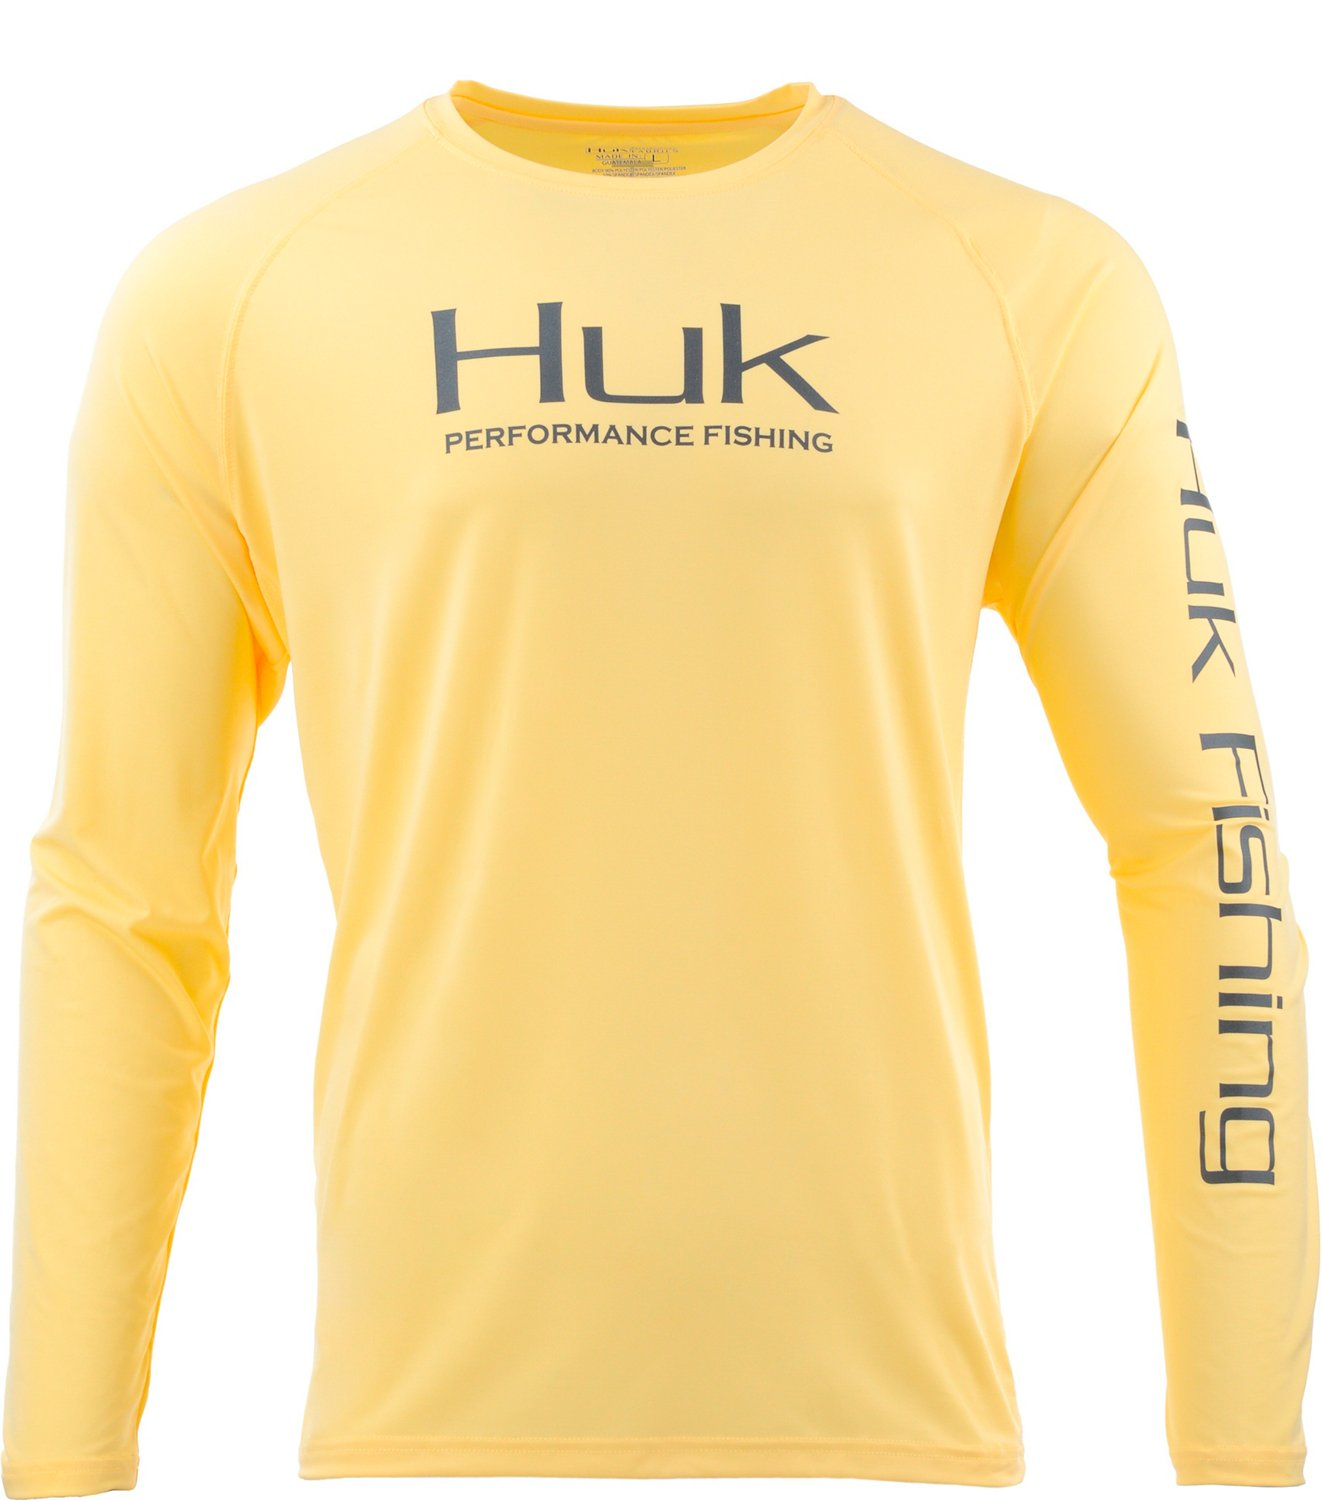 98a98185c5d7 Display product reviews for Huk Men's Pursuit Vented Long Sleeve T-shirt